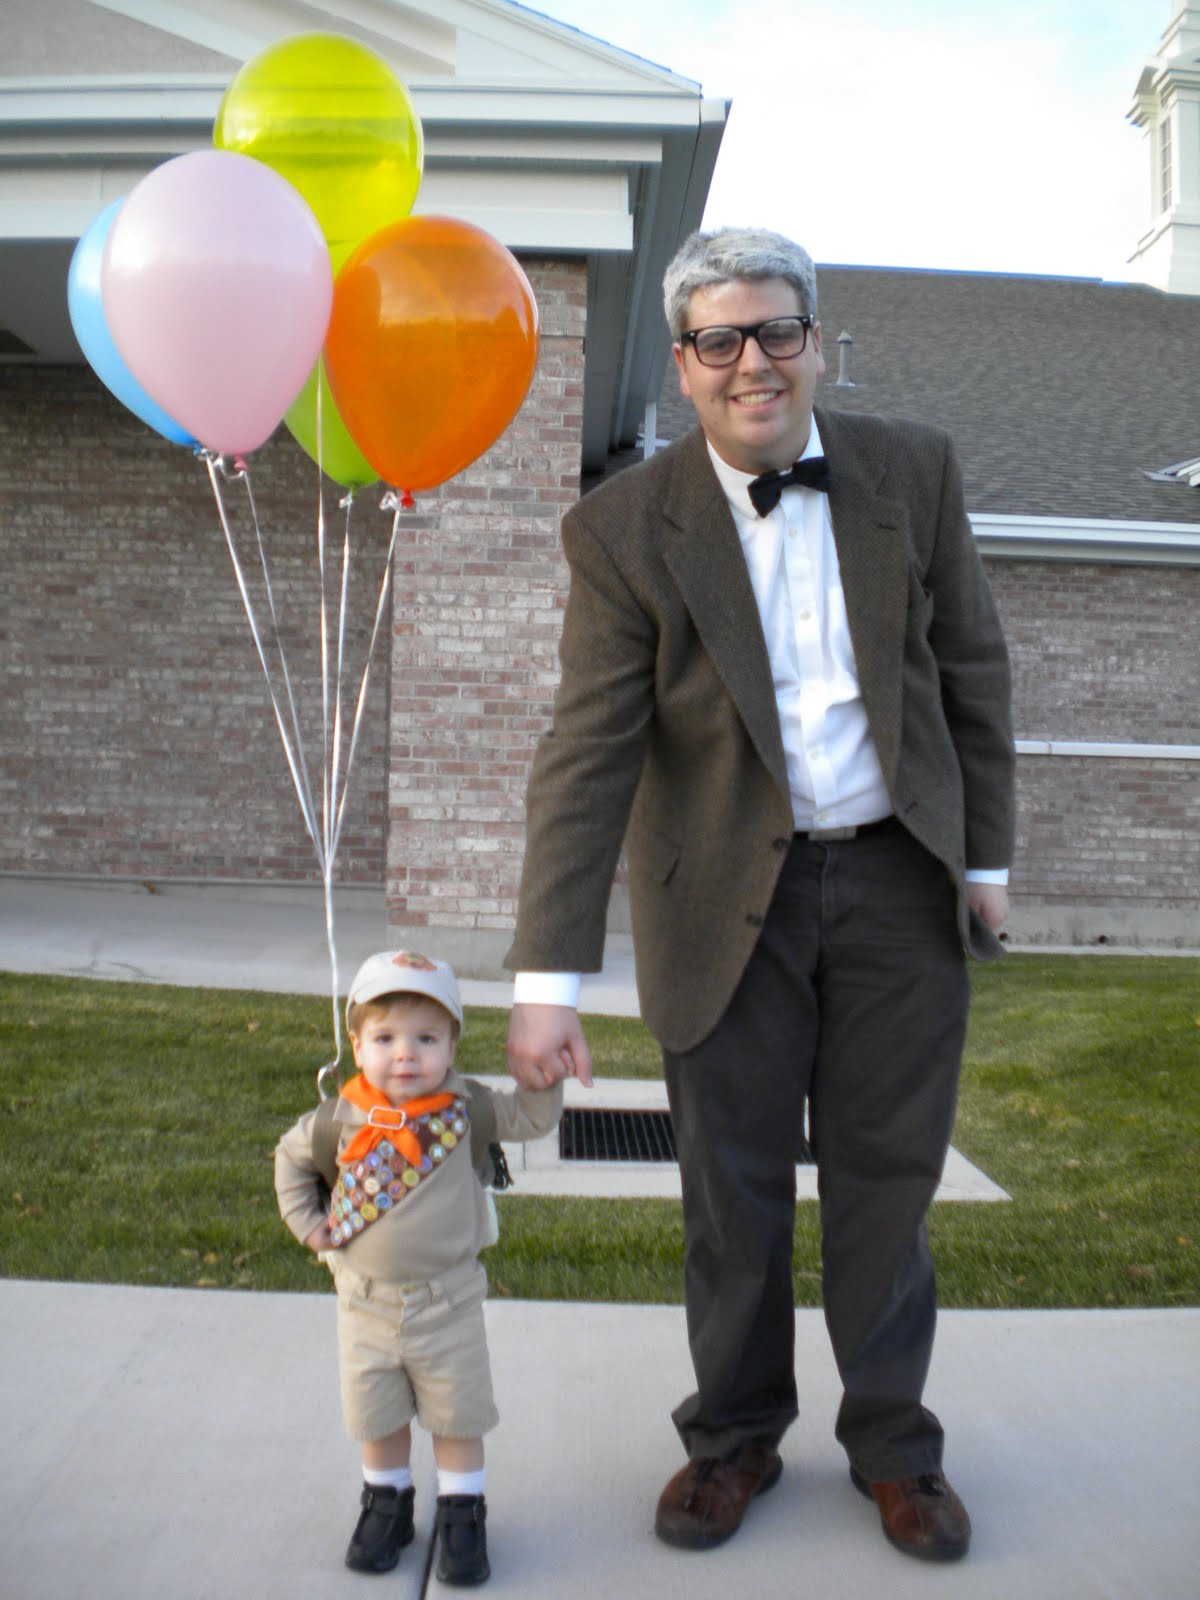 Favorite Halloween Costume Ideas For Pairs: The Boy And Old Man From Up | Oh